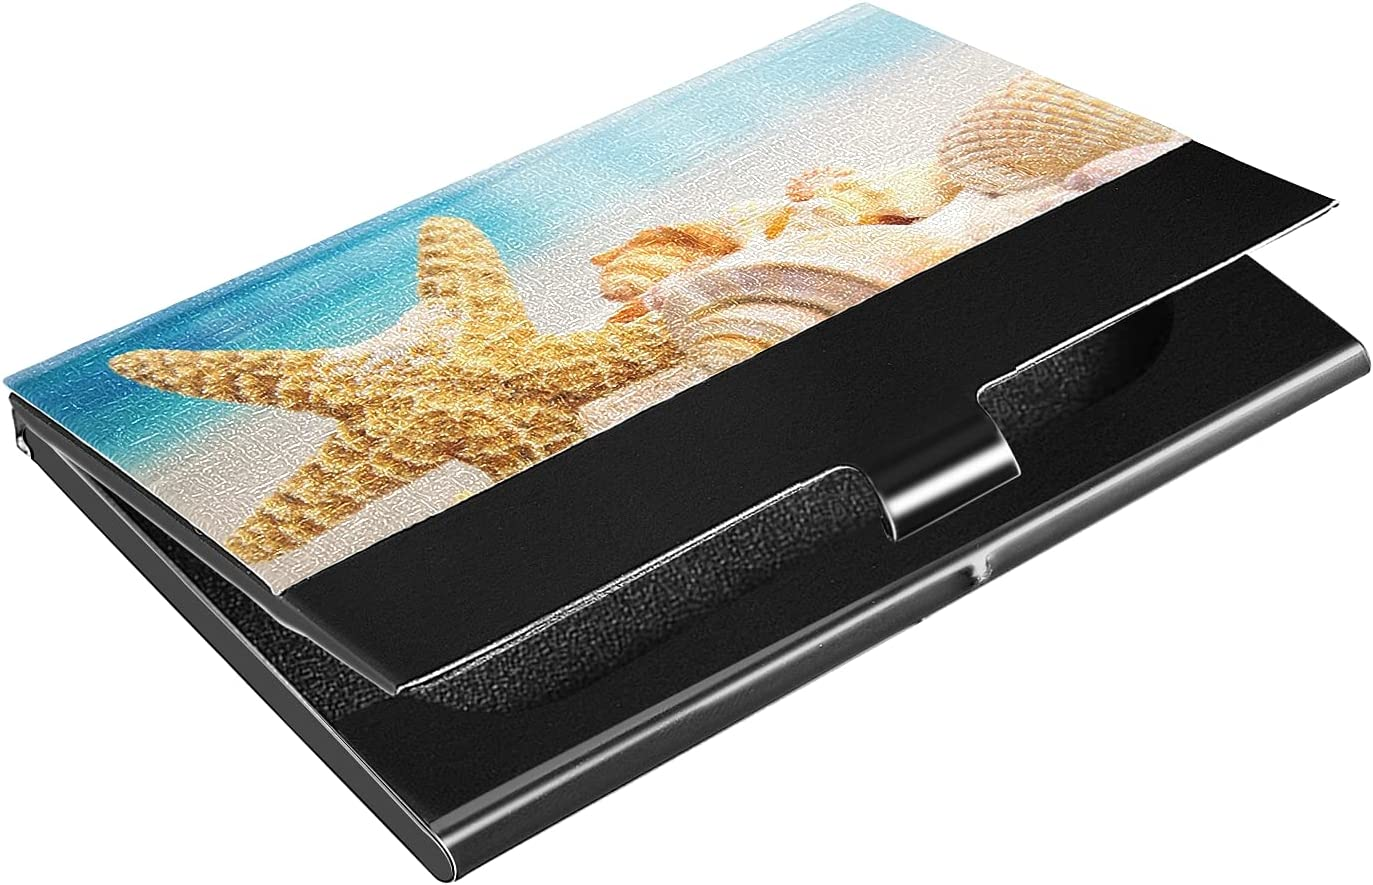 OTVEE Starfish and Shells Beach Business Card Holder Wallet Stainless Steel & Leather Pocket Business Card Case Organizer Slim Name Card ID Card Holders Credit Card Wallet Carrier Purse for Women Men